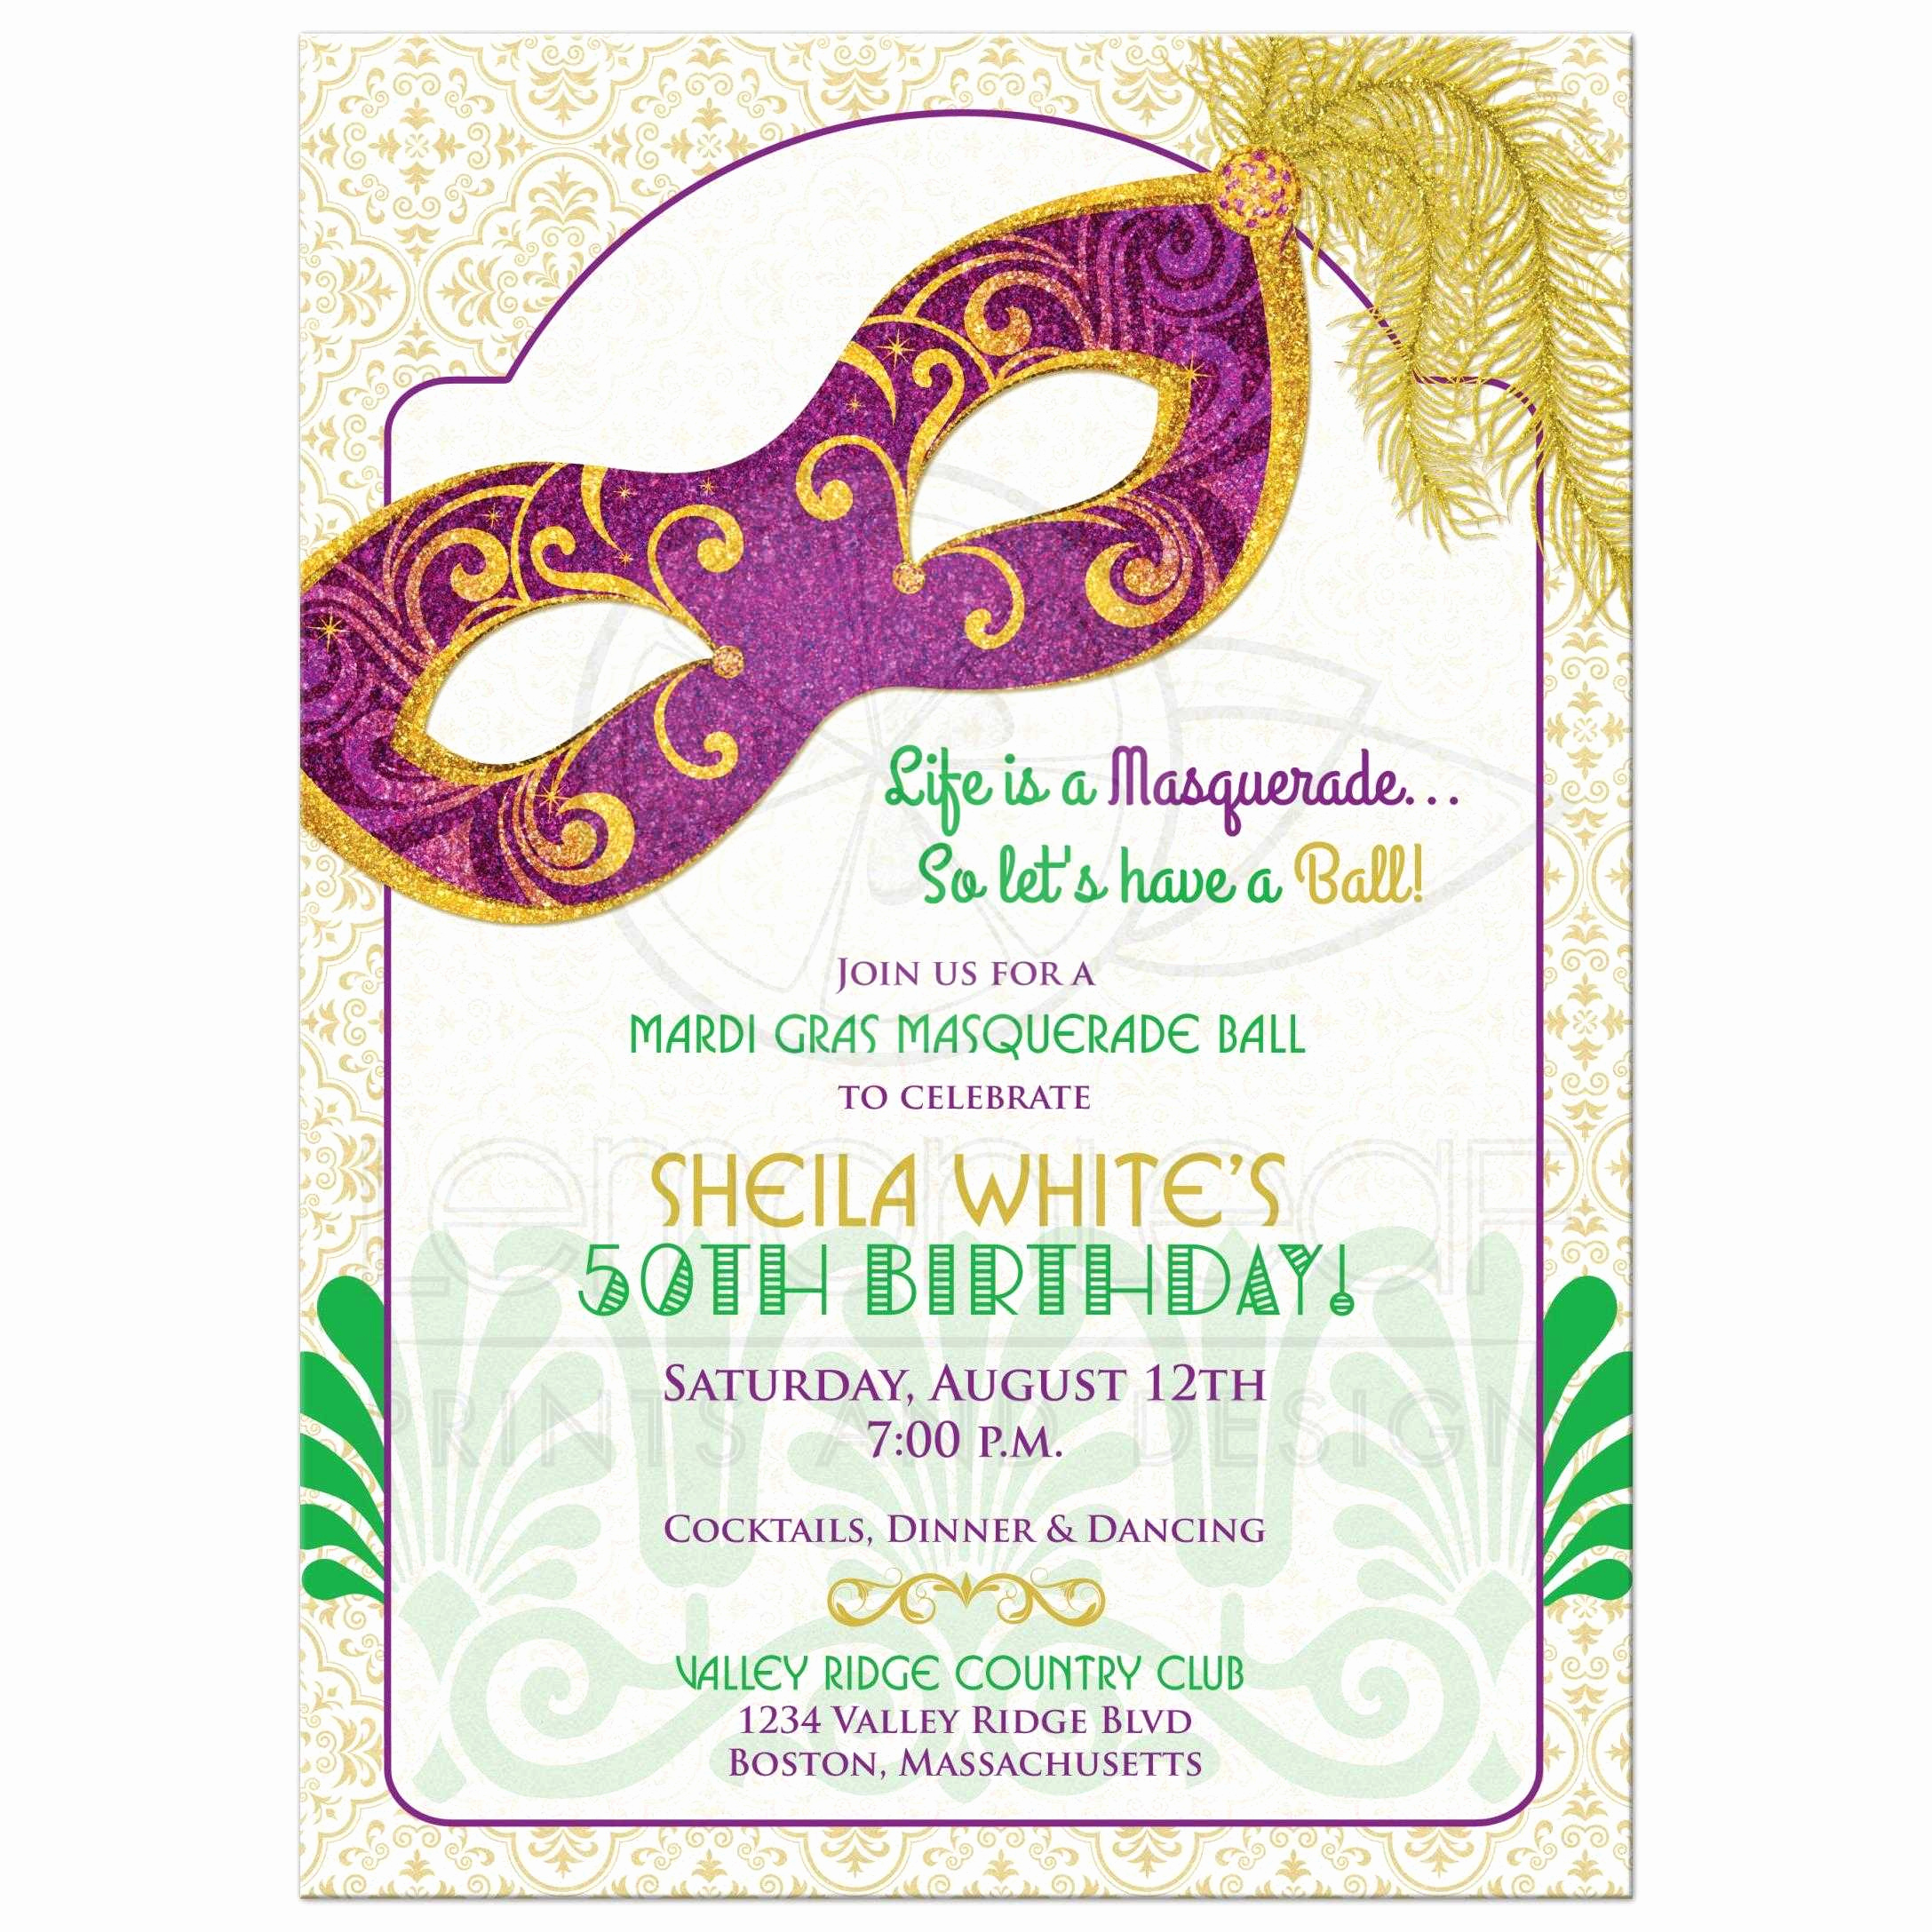 Mardi Gras Invitation Wording Awesome Mardi Gras 50th Birthday Party Invitation Masquerade Mask